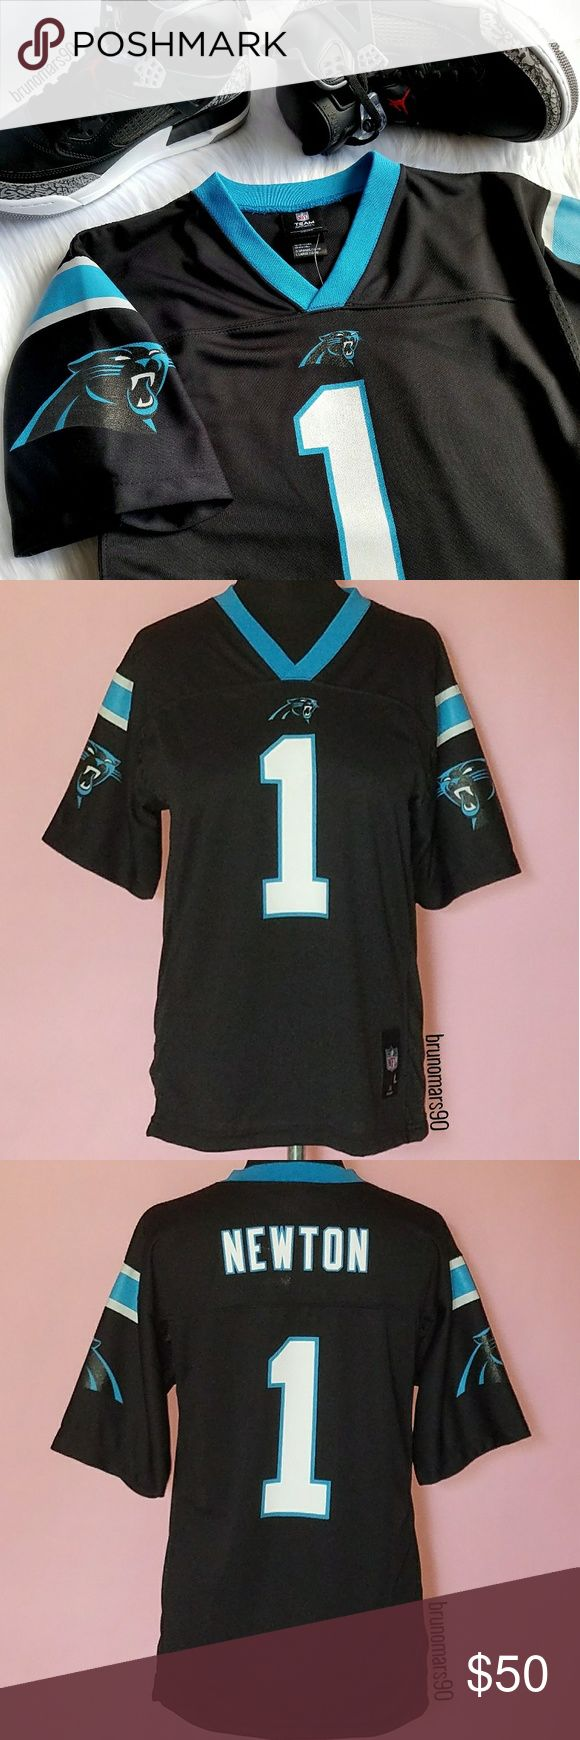 "Cam Newton NFL Jersey NWT Dab into Superman's gear. Show them your #1 everytime you wear this officially licensed Carolina Panthers Cam Newton jersey. Features team & player graphics, mesh side panels, woven jock tag, v-neck, and short sleeves. Measures 26"" from top to hem, 18"" from underarm to underarm, 9"" sleeve from shoulder. 100% Polyester. Size is L Youth. Will fit a Women's size S. No trades. NFL Shirts & Tops"